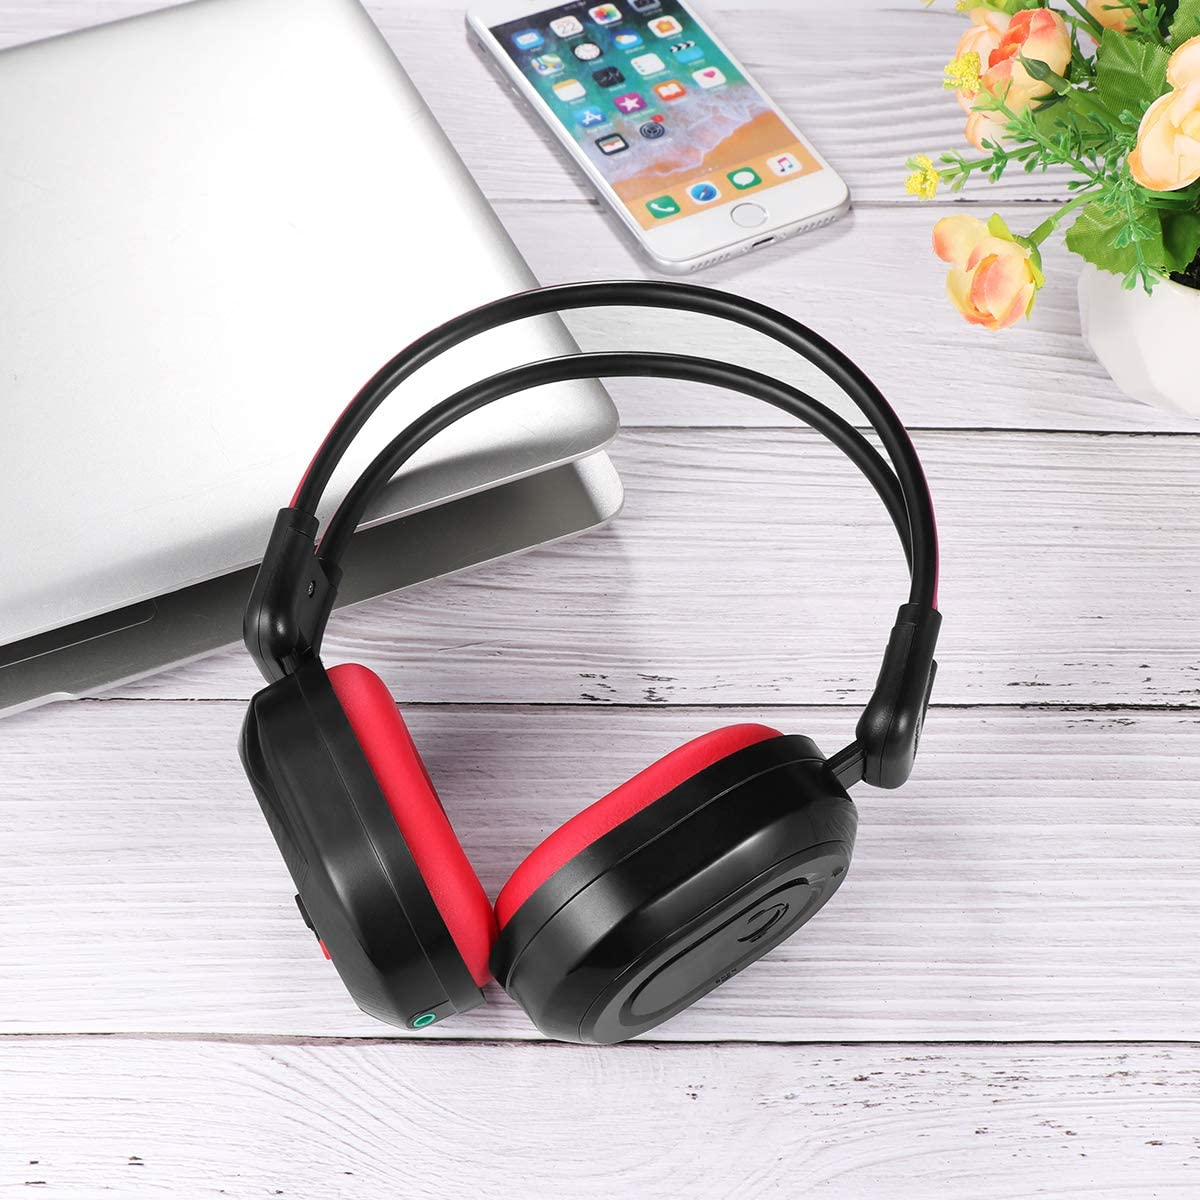 Foldable Wireless Headphone Portable FM Stereo Headset Radio (Black Red)